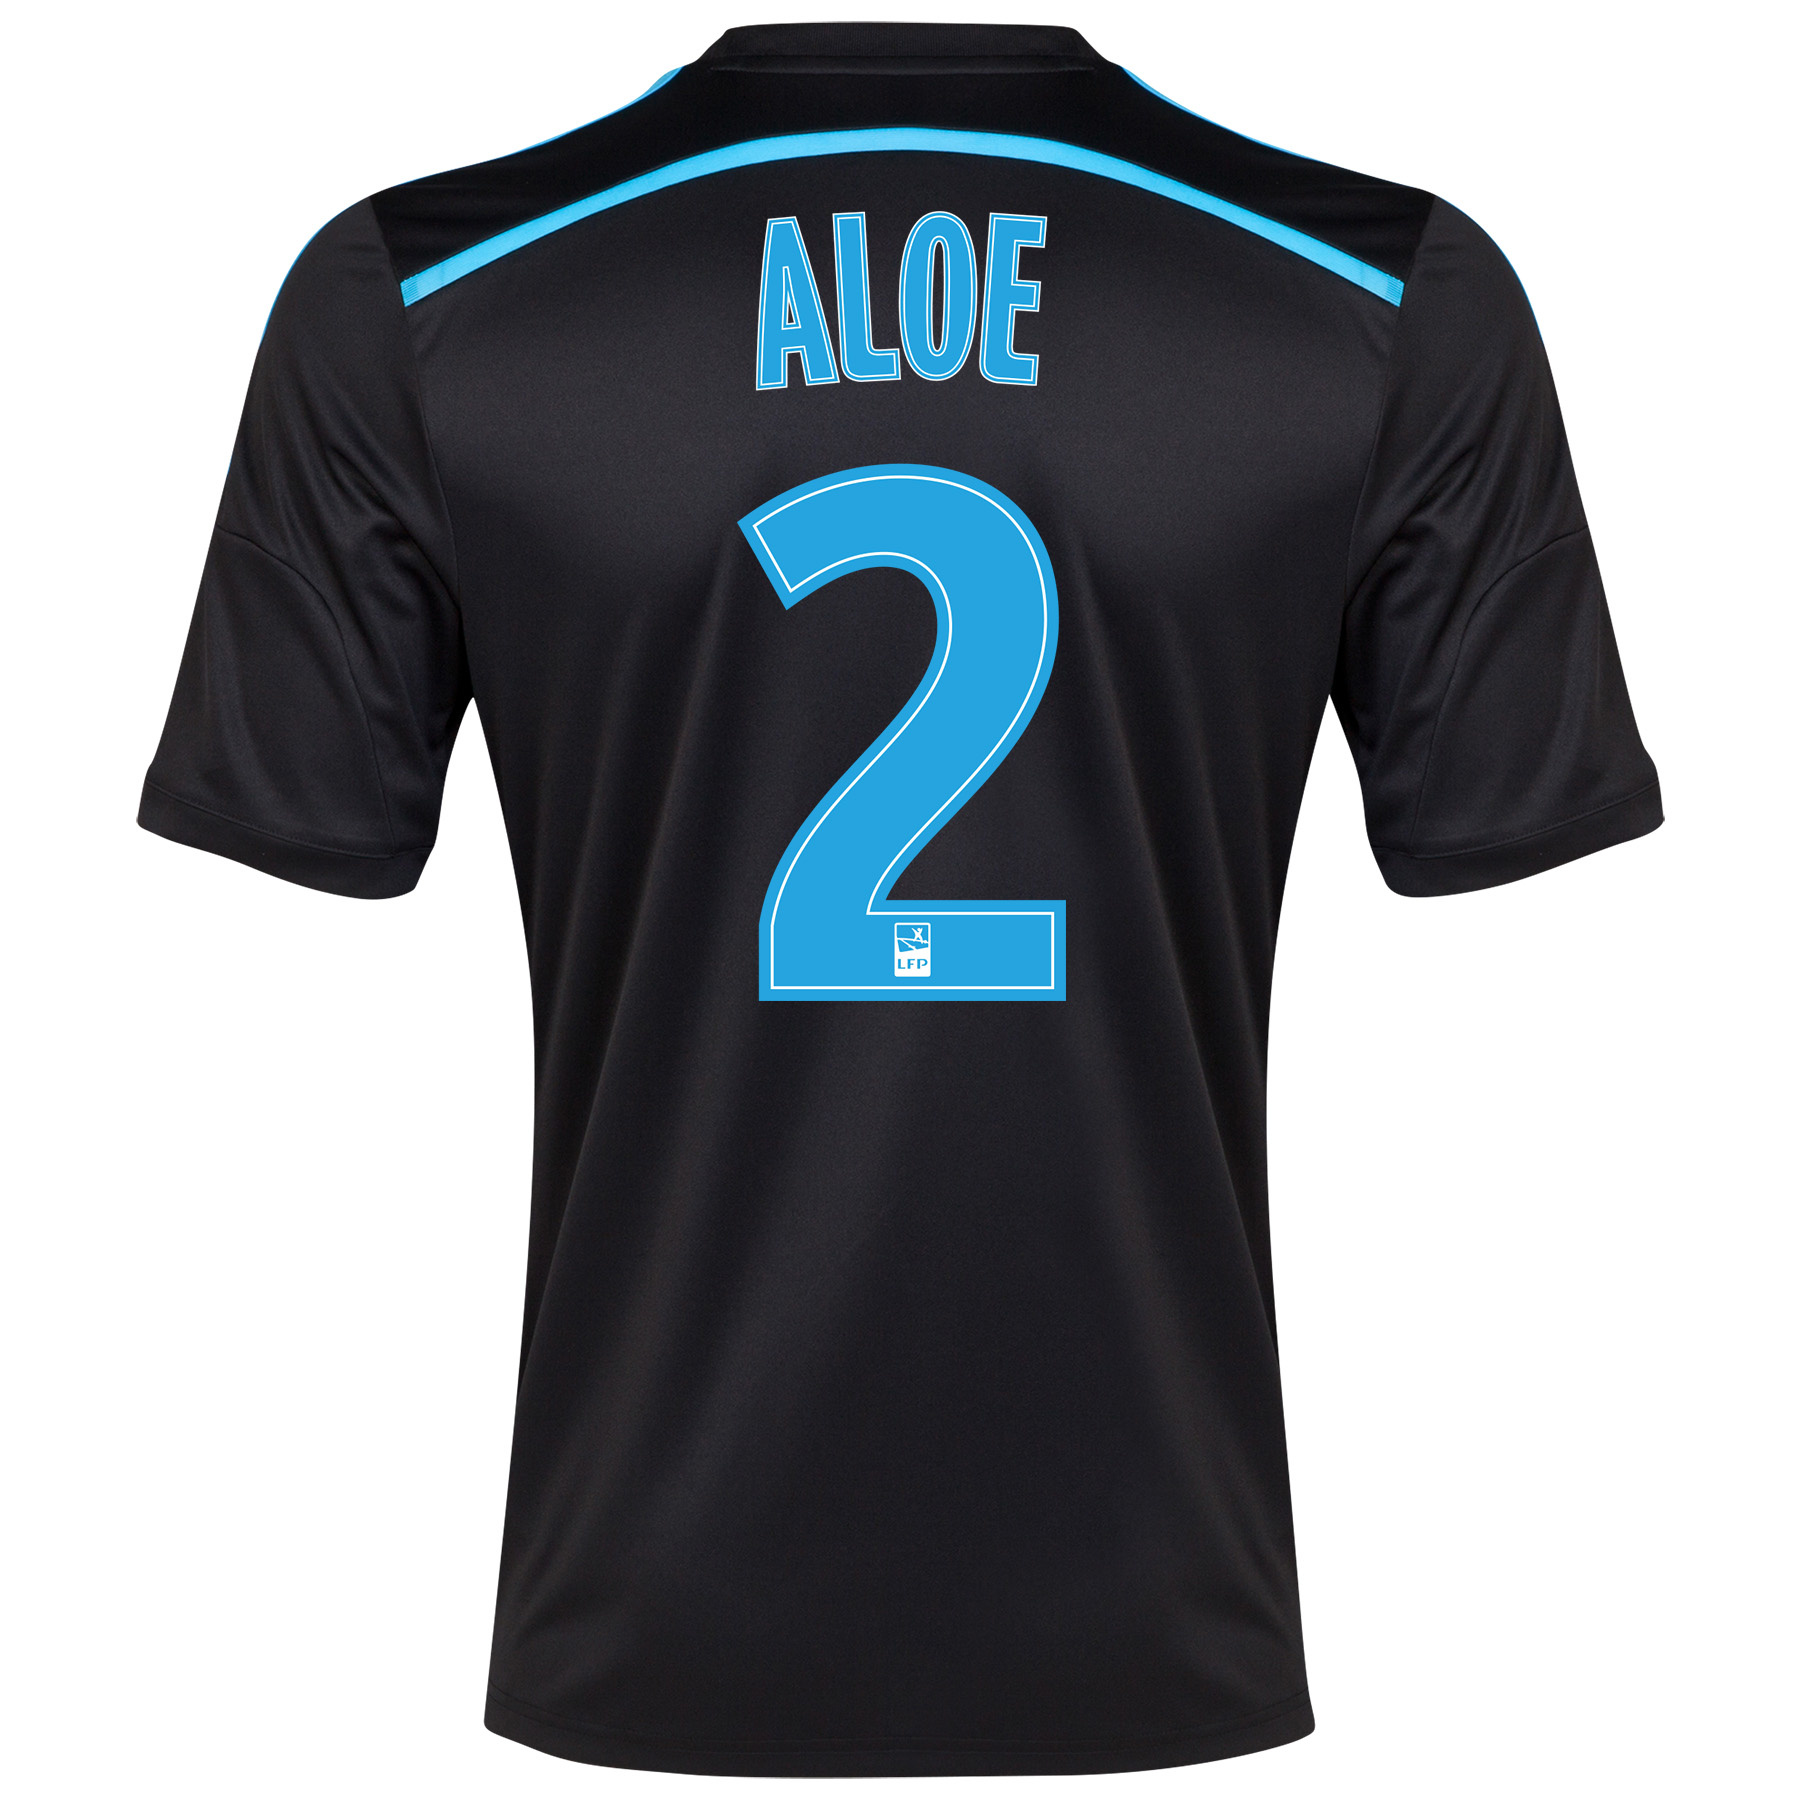 Olympique de Marseille 3rd Shirt Short Sleeve - Junior 2014/15 Black with Aloe 2 printing